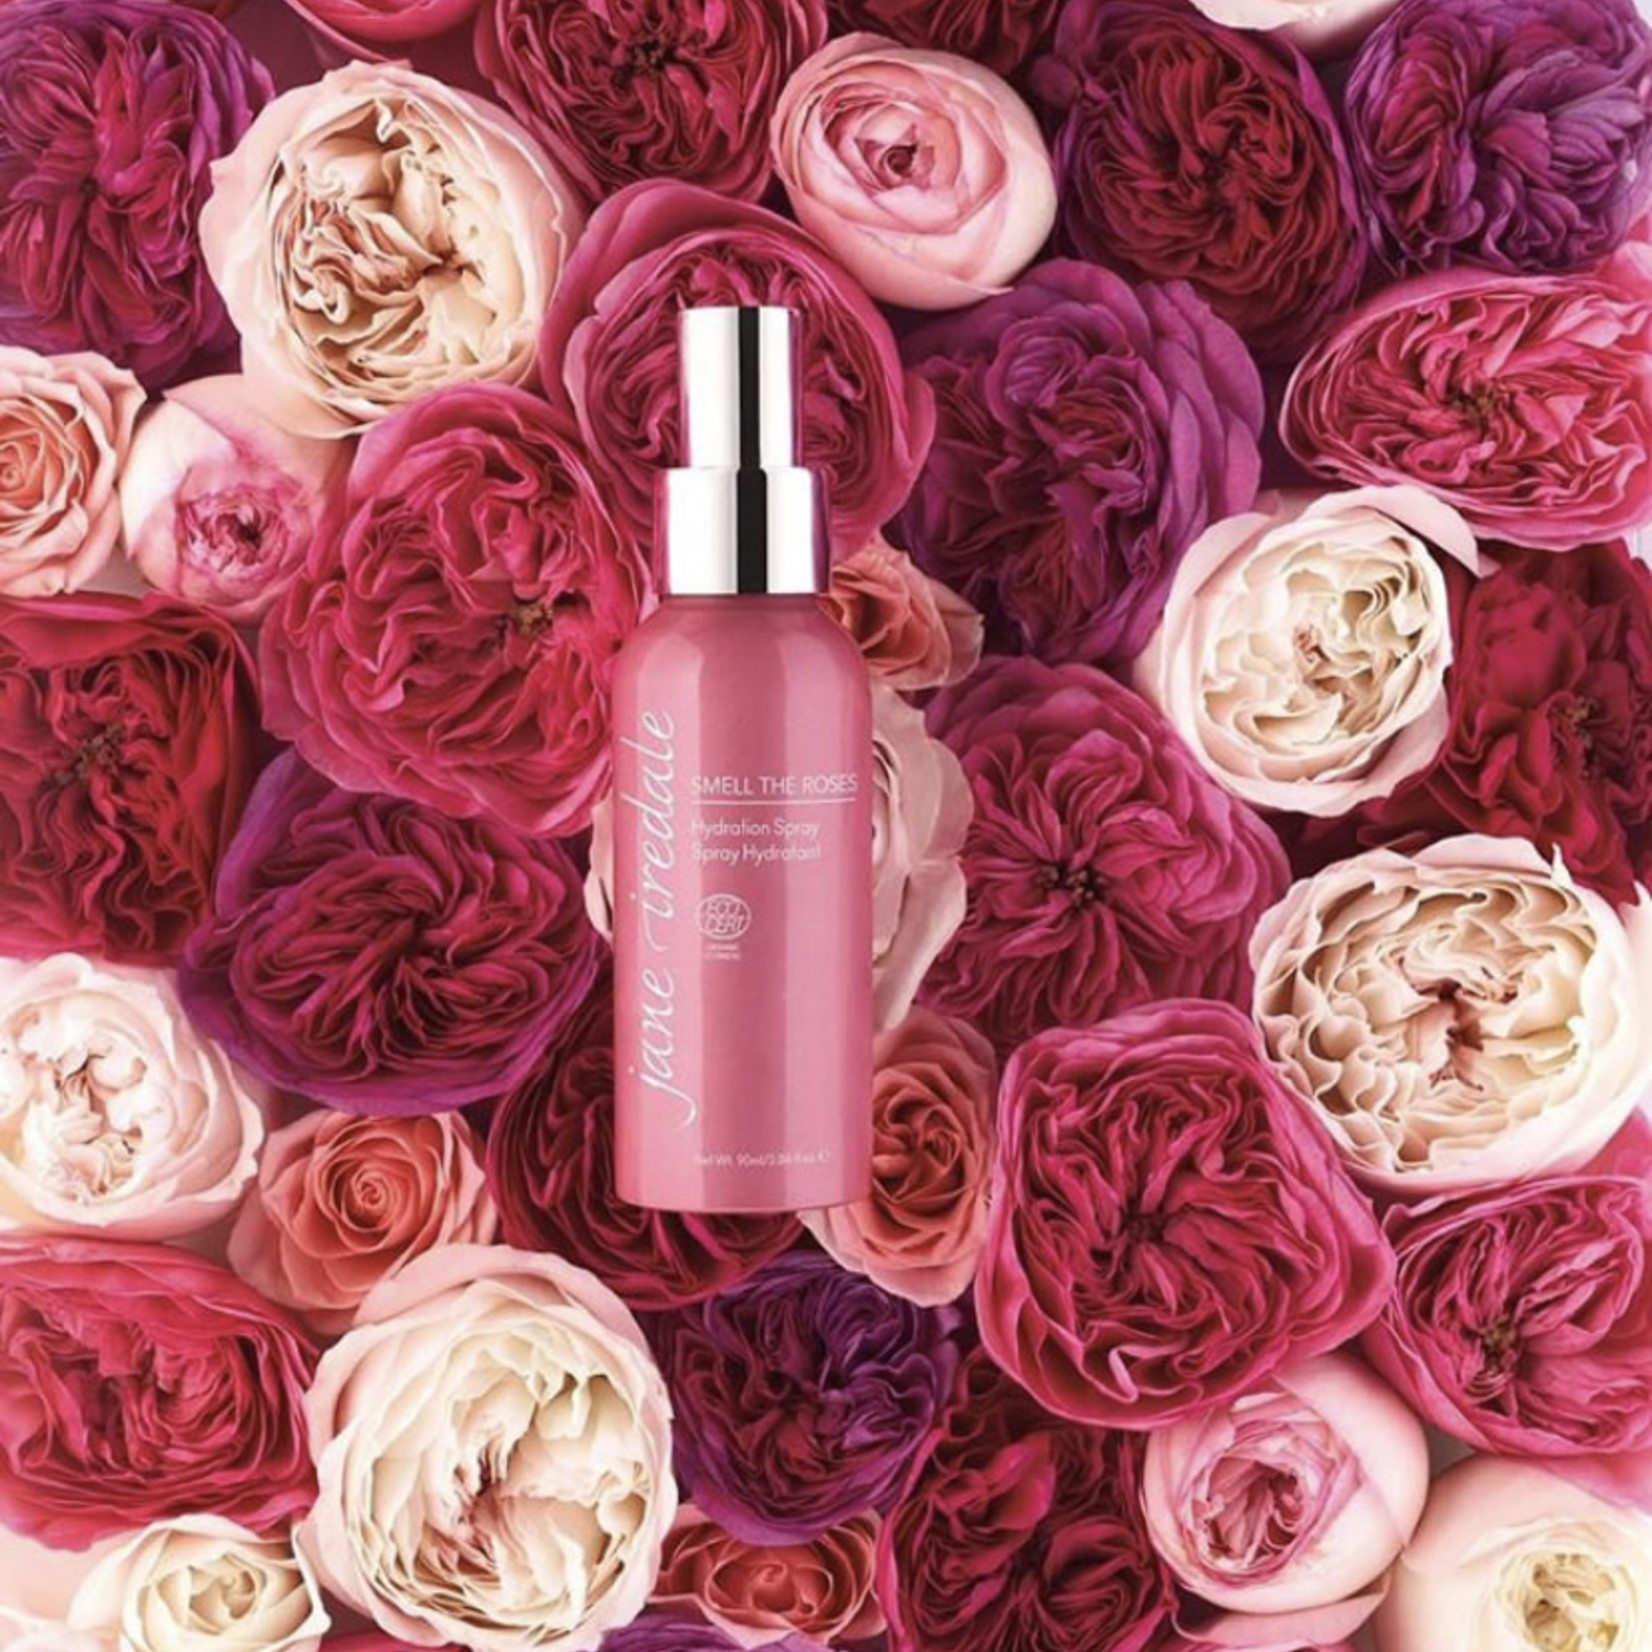 jane iredale Hydration spray smell the roses limited edition